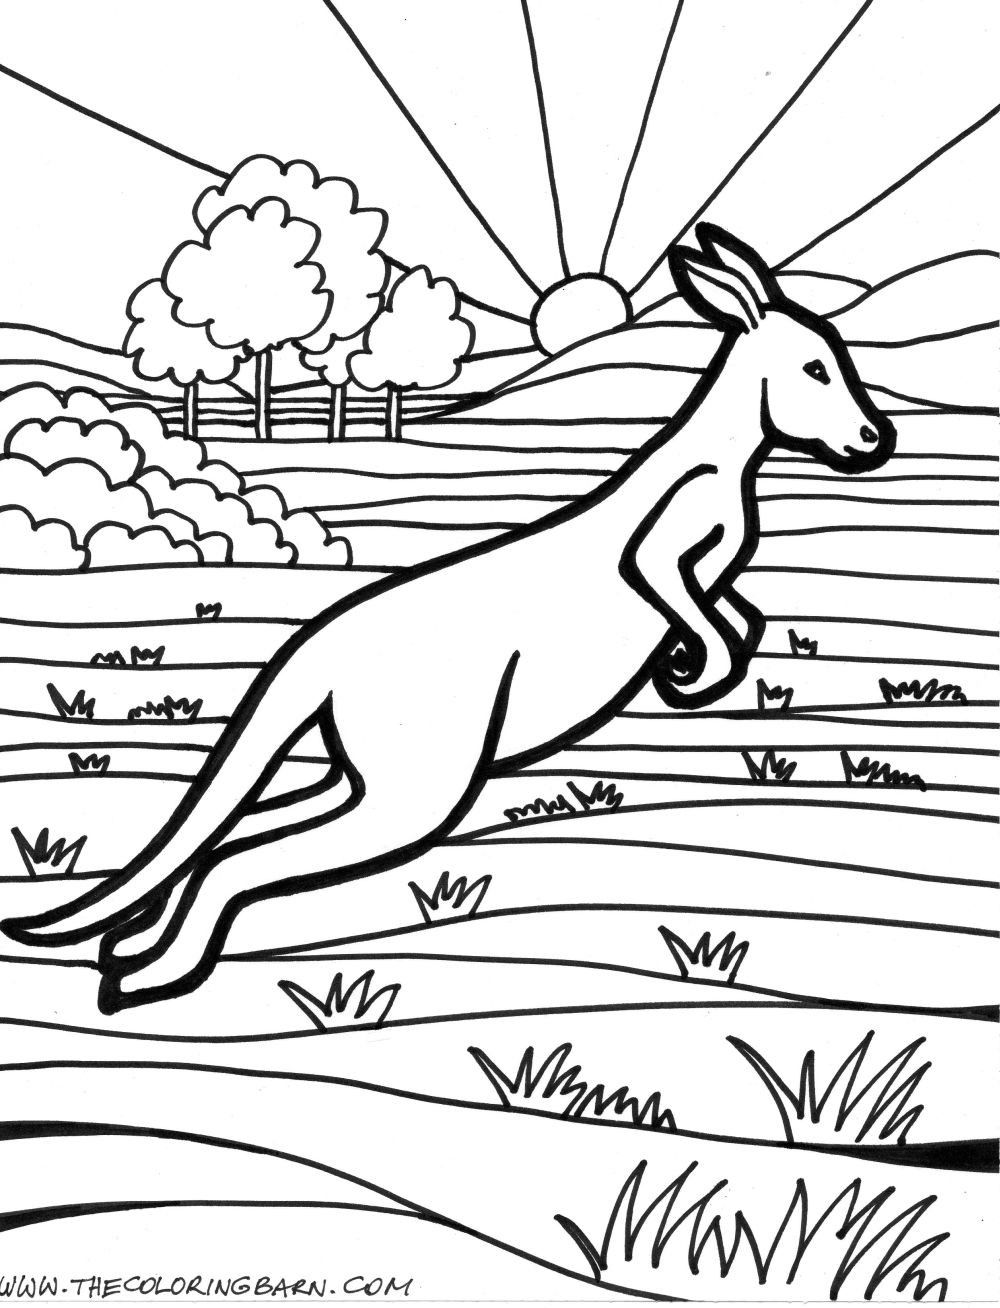 australian outback coloring pages for 2019 http://www